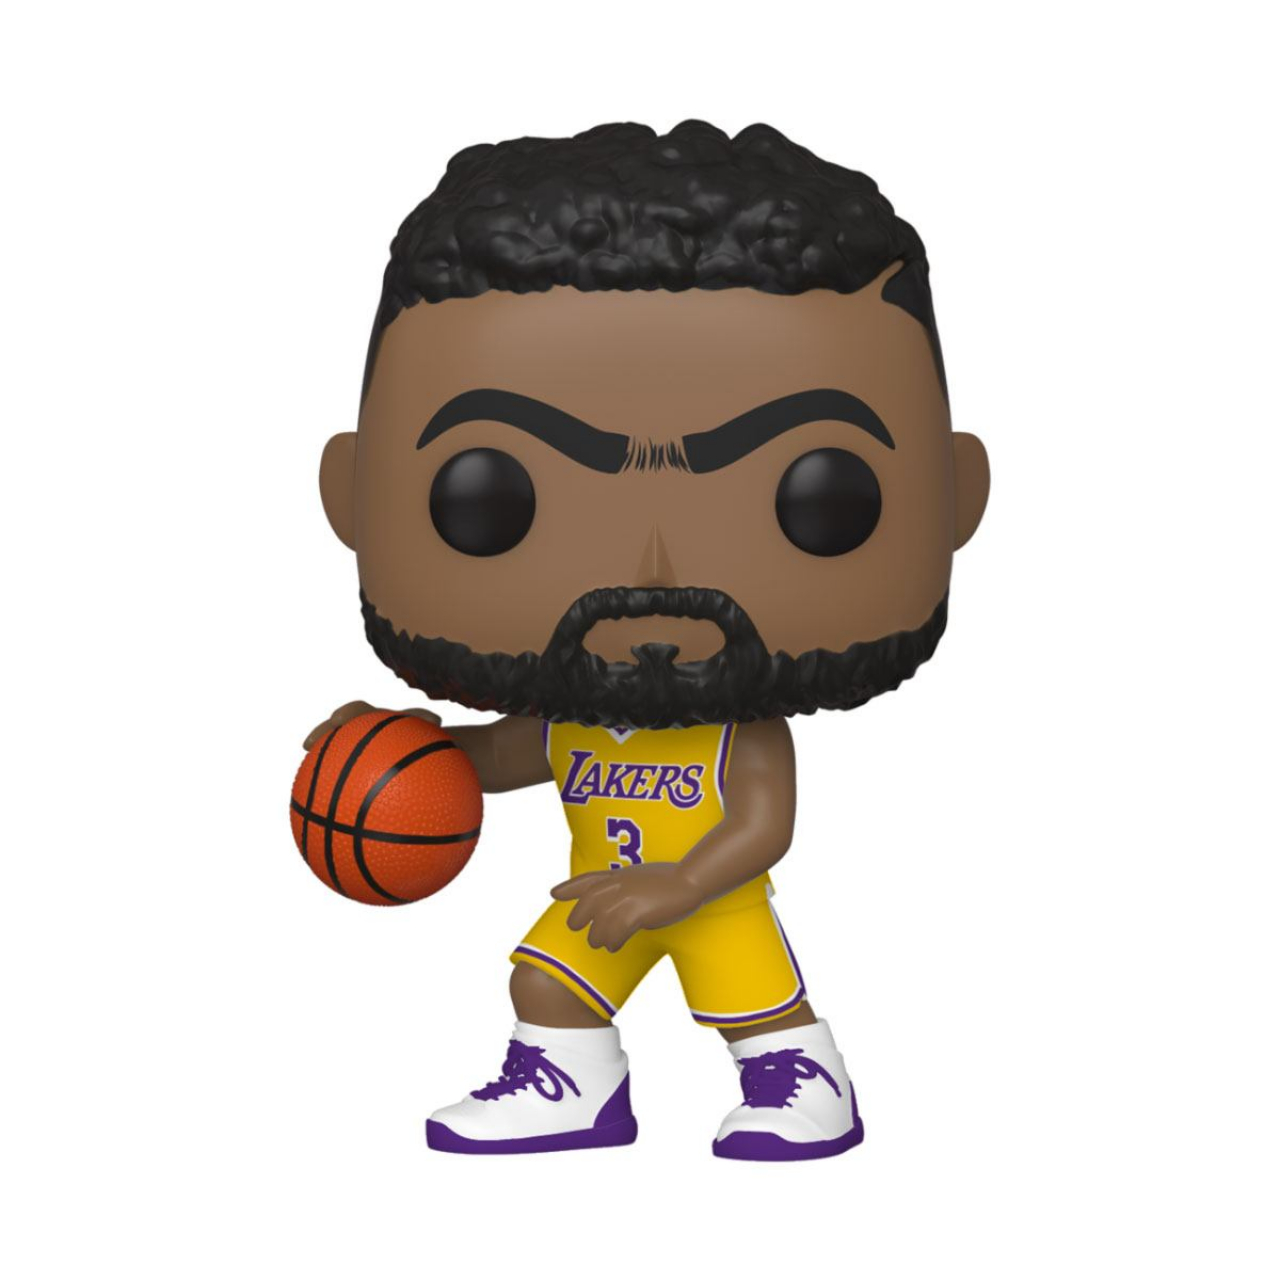 NBA POP! Sports Vinyl Figure Anthony Davis (Lakers) 9 cm